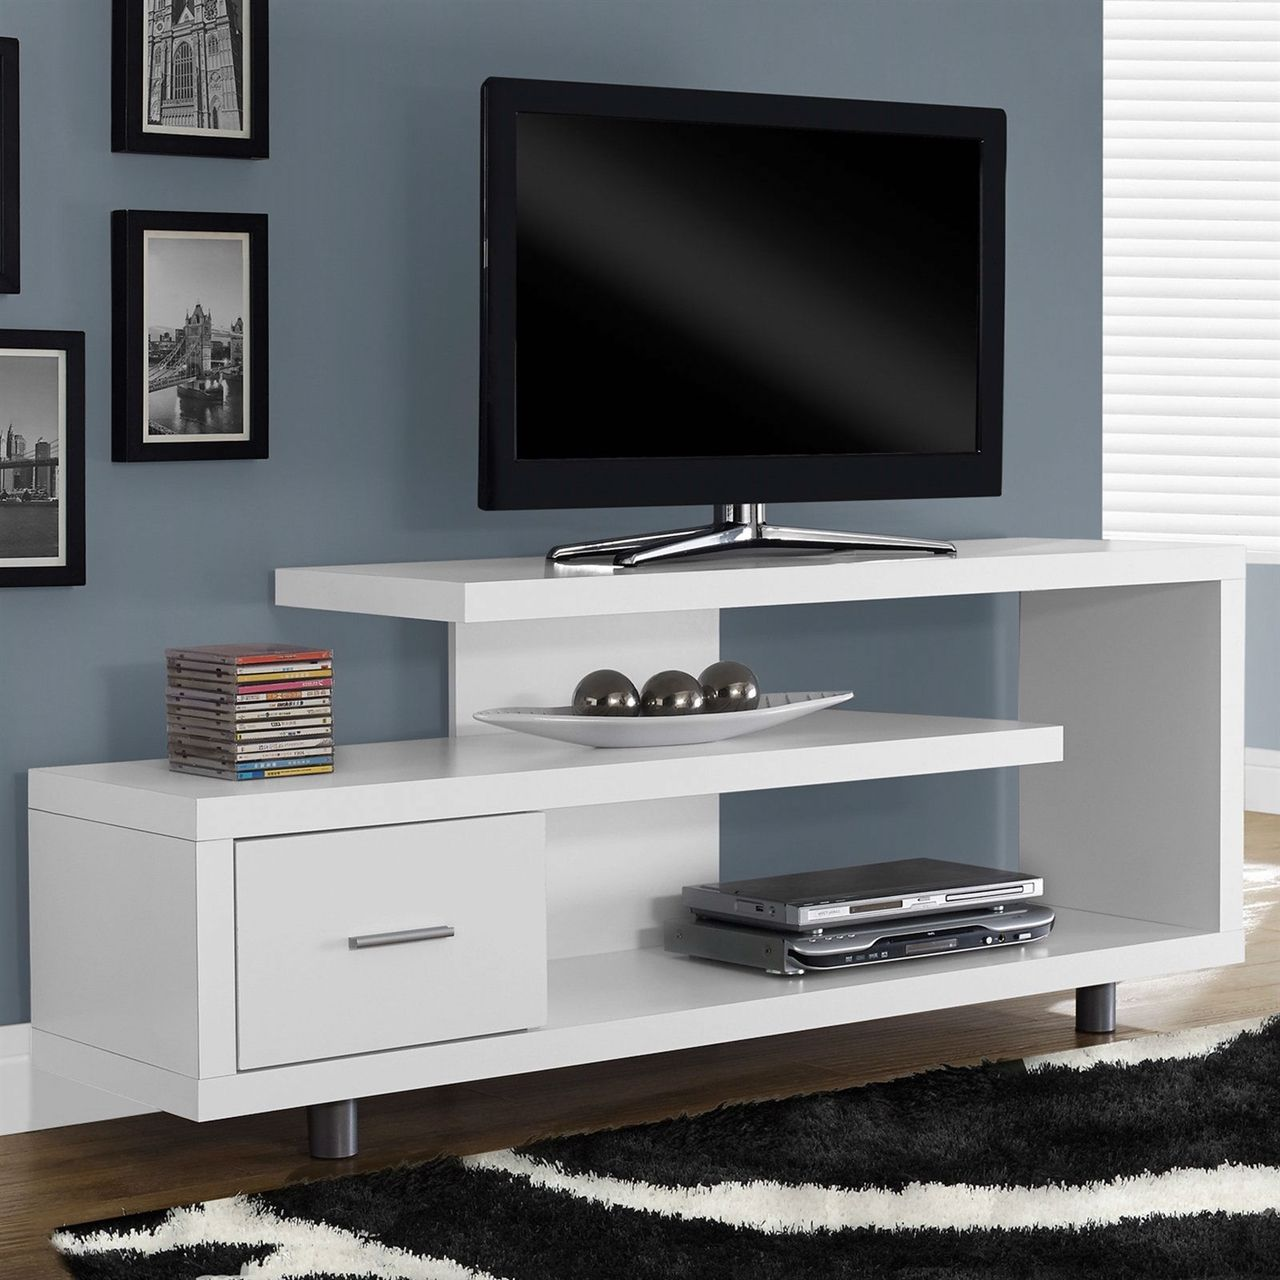 Flat Screen Tv Stands White Modern Tv Stand Fits Up To 60 Inch Flat Screen Tv Dream